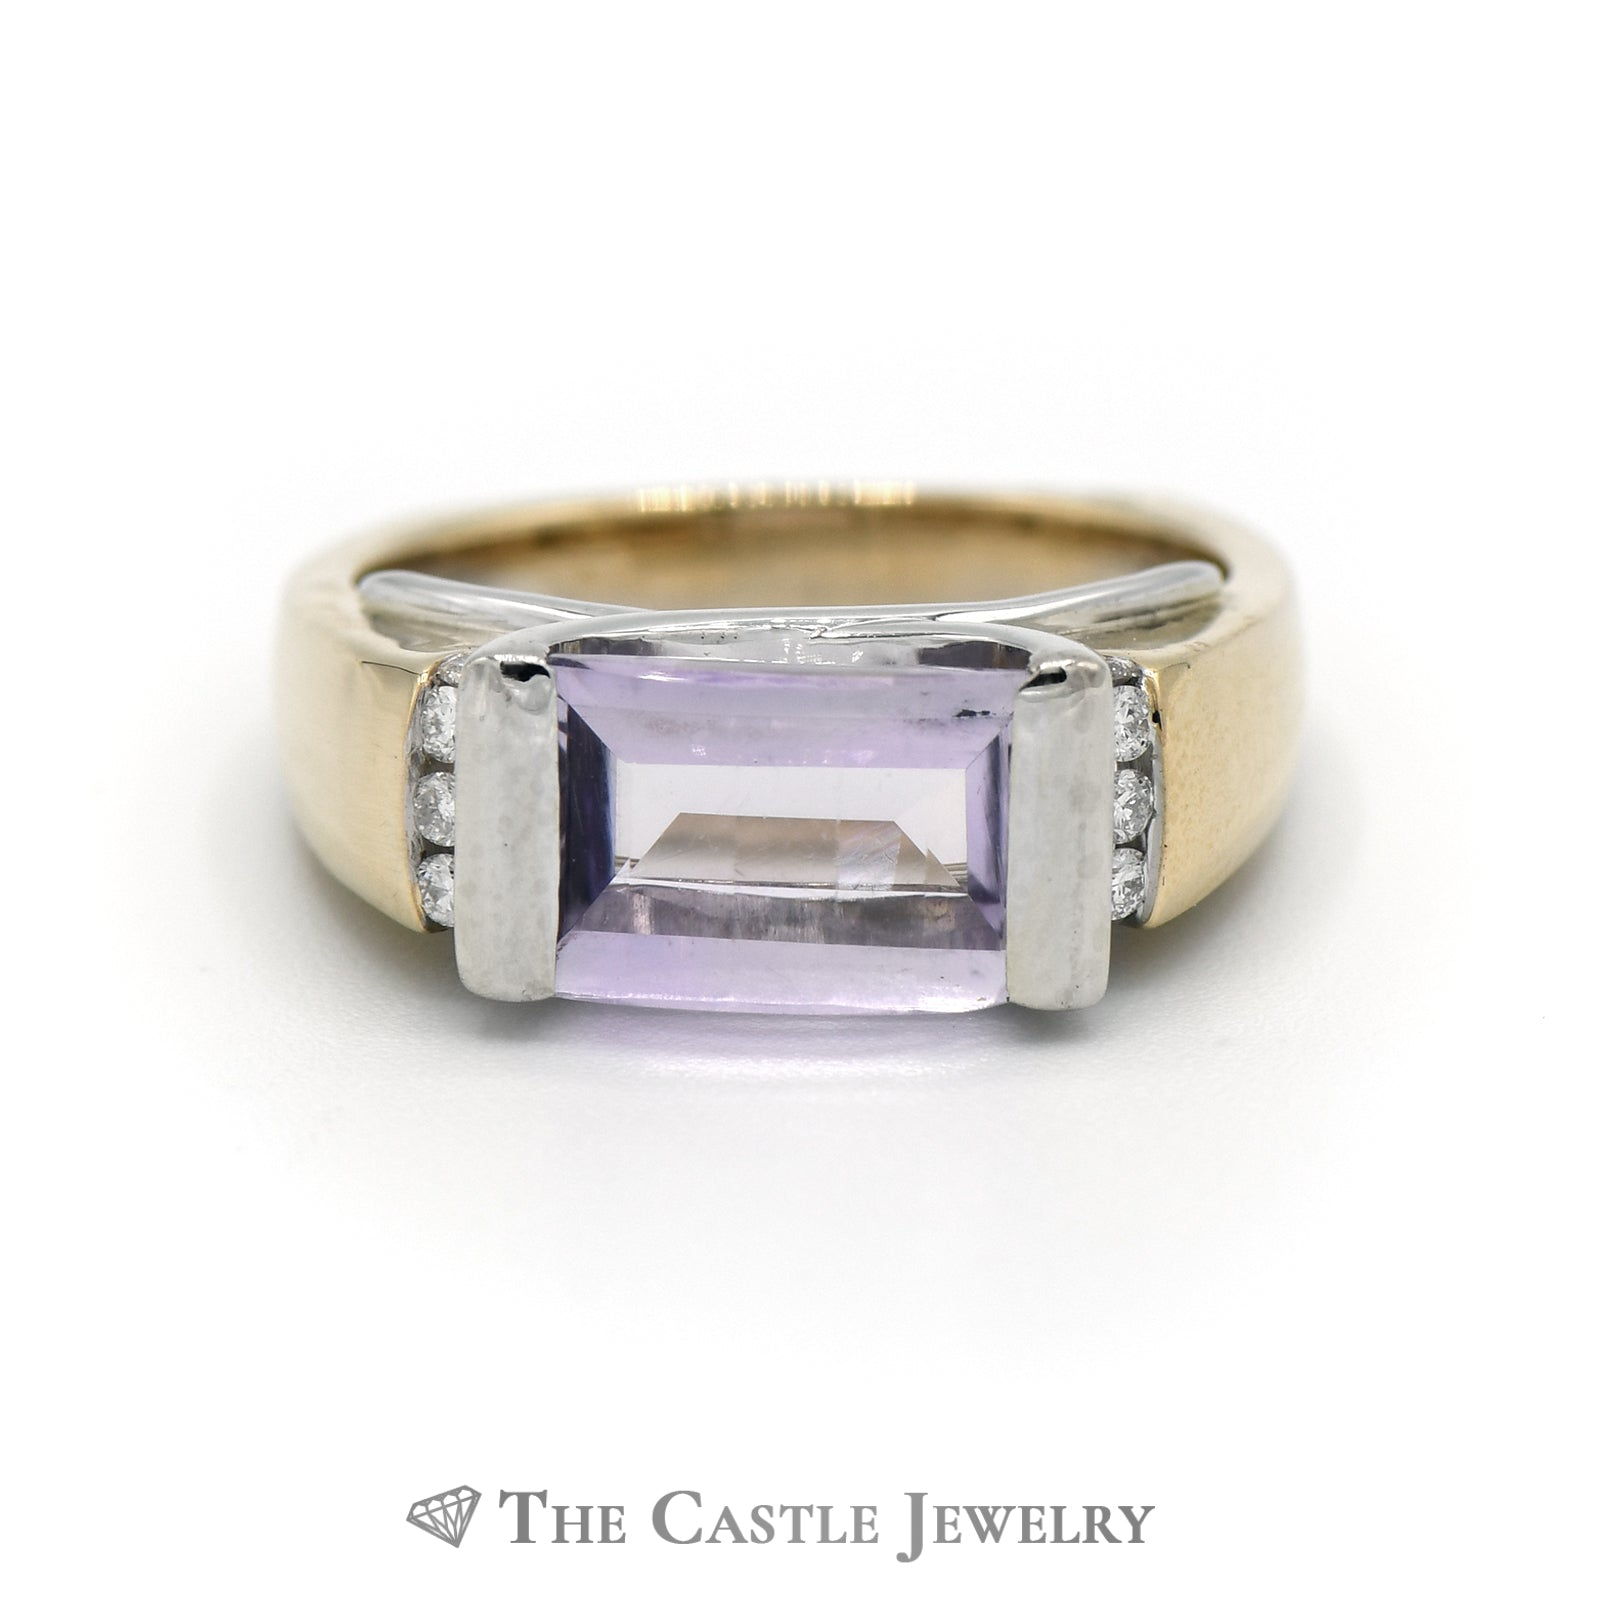 Fancy Cut Amethyst Ring With .09cttw Diamonds 14K Yellow Gold